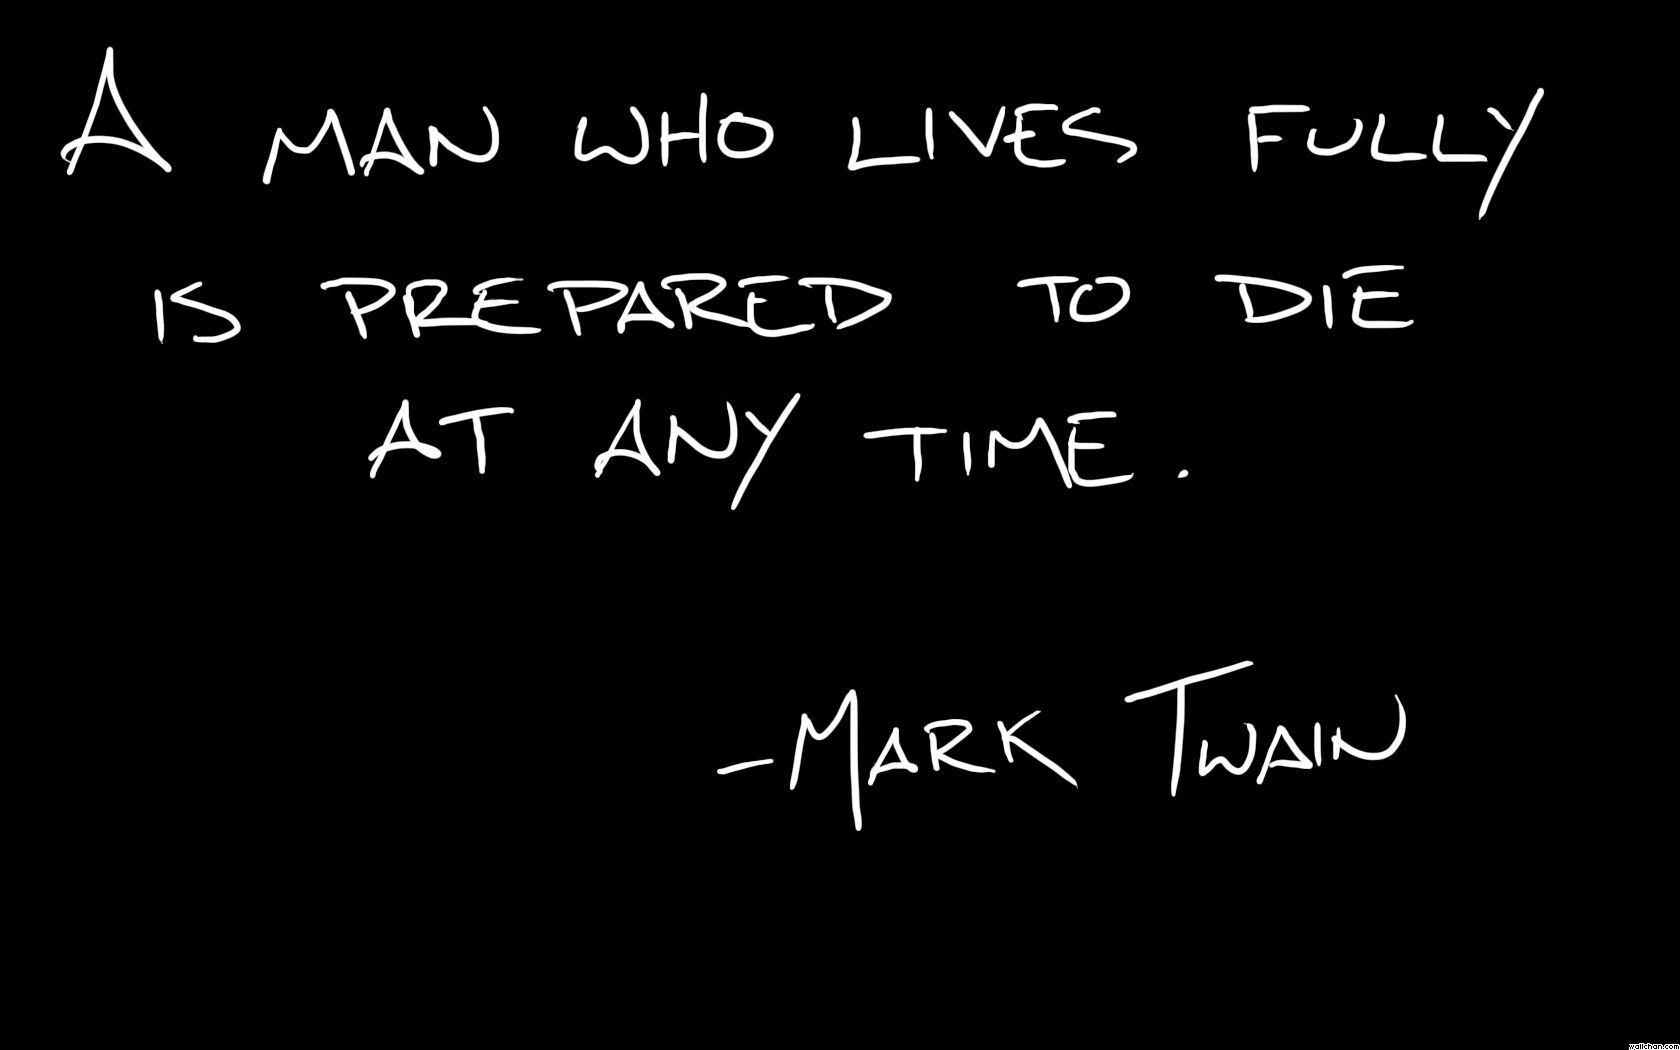 Abstract Backgrounds In High Quality Mark Twain Quotes by Alan 1680x1050